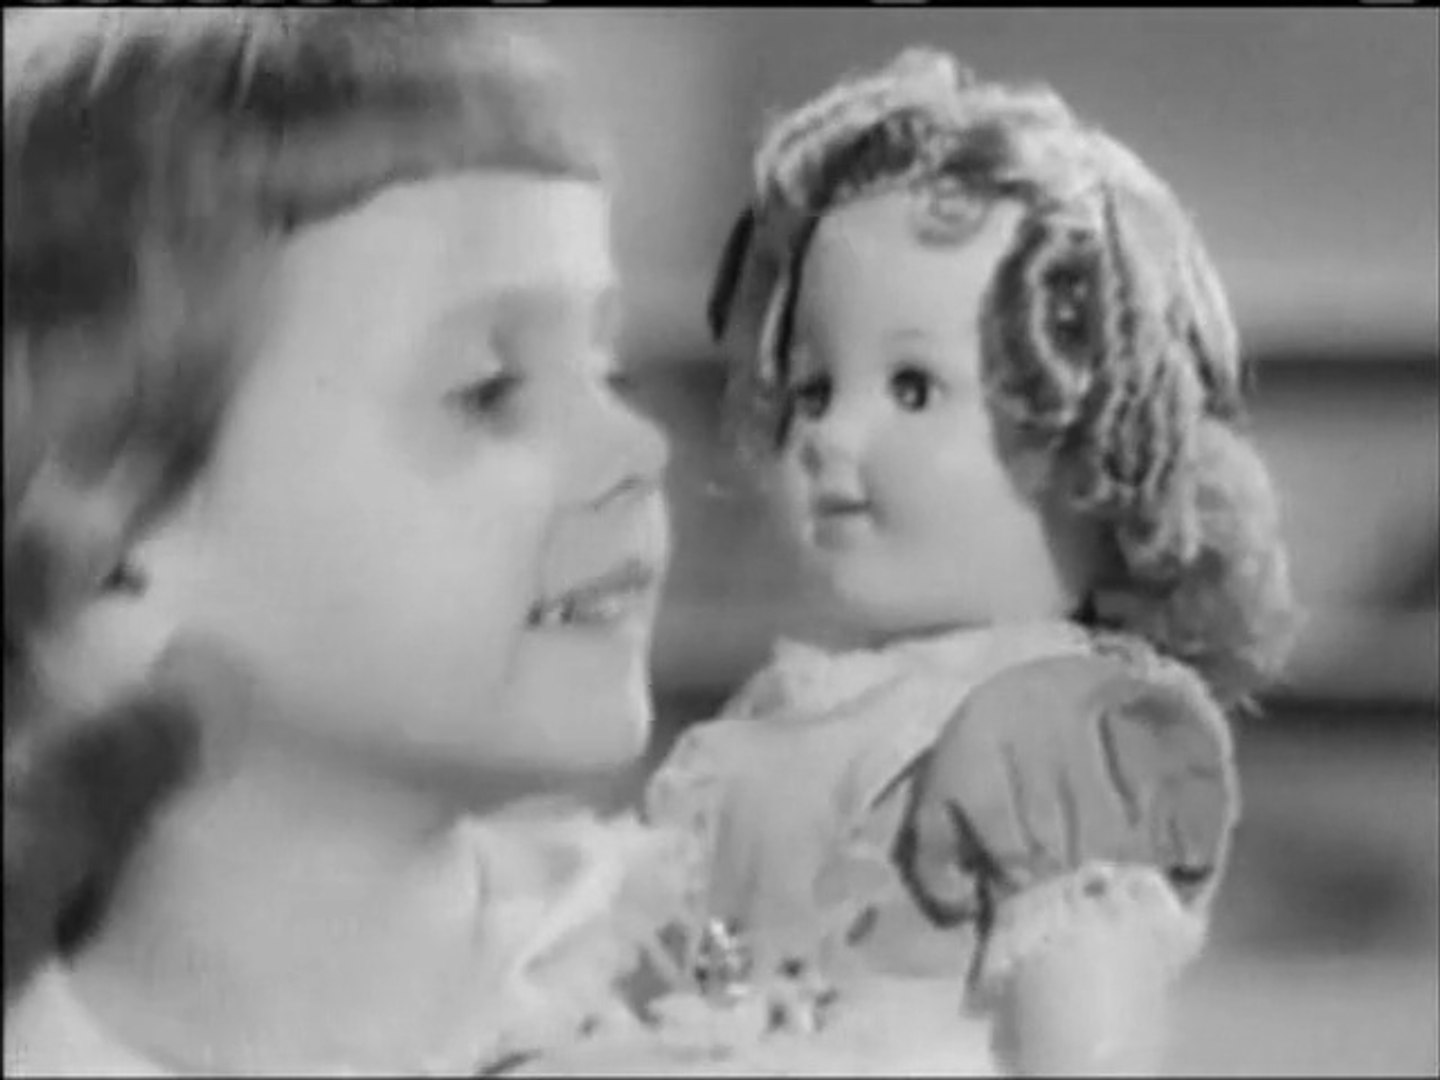 1950s SHIRLEY TEMPLE DOLL COMMERCIAL